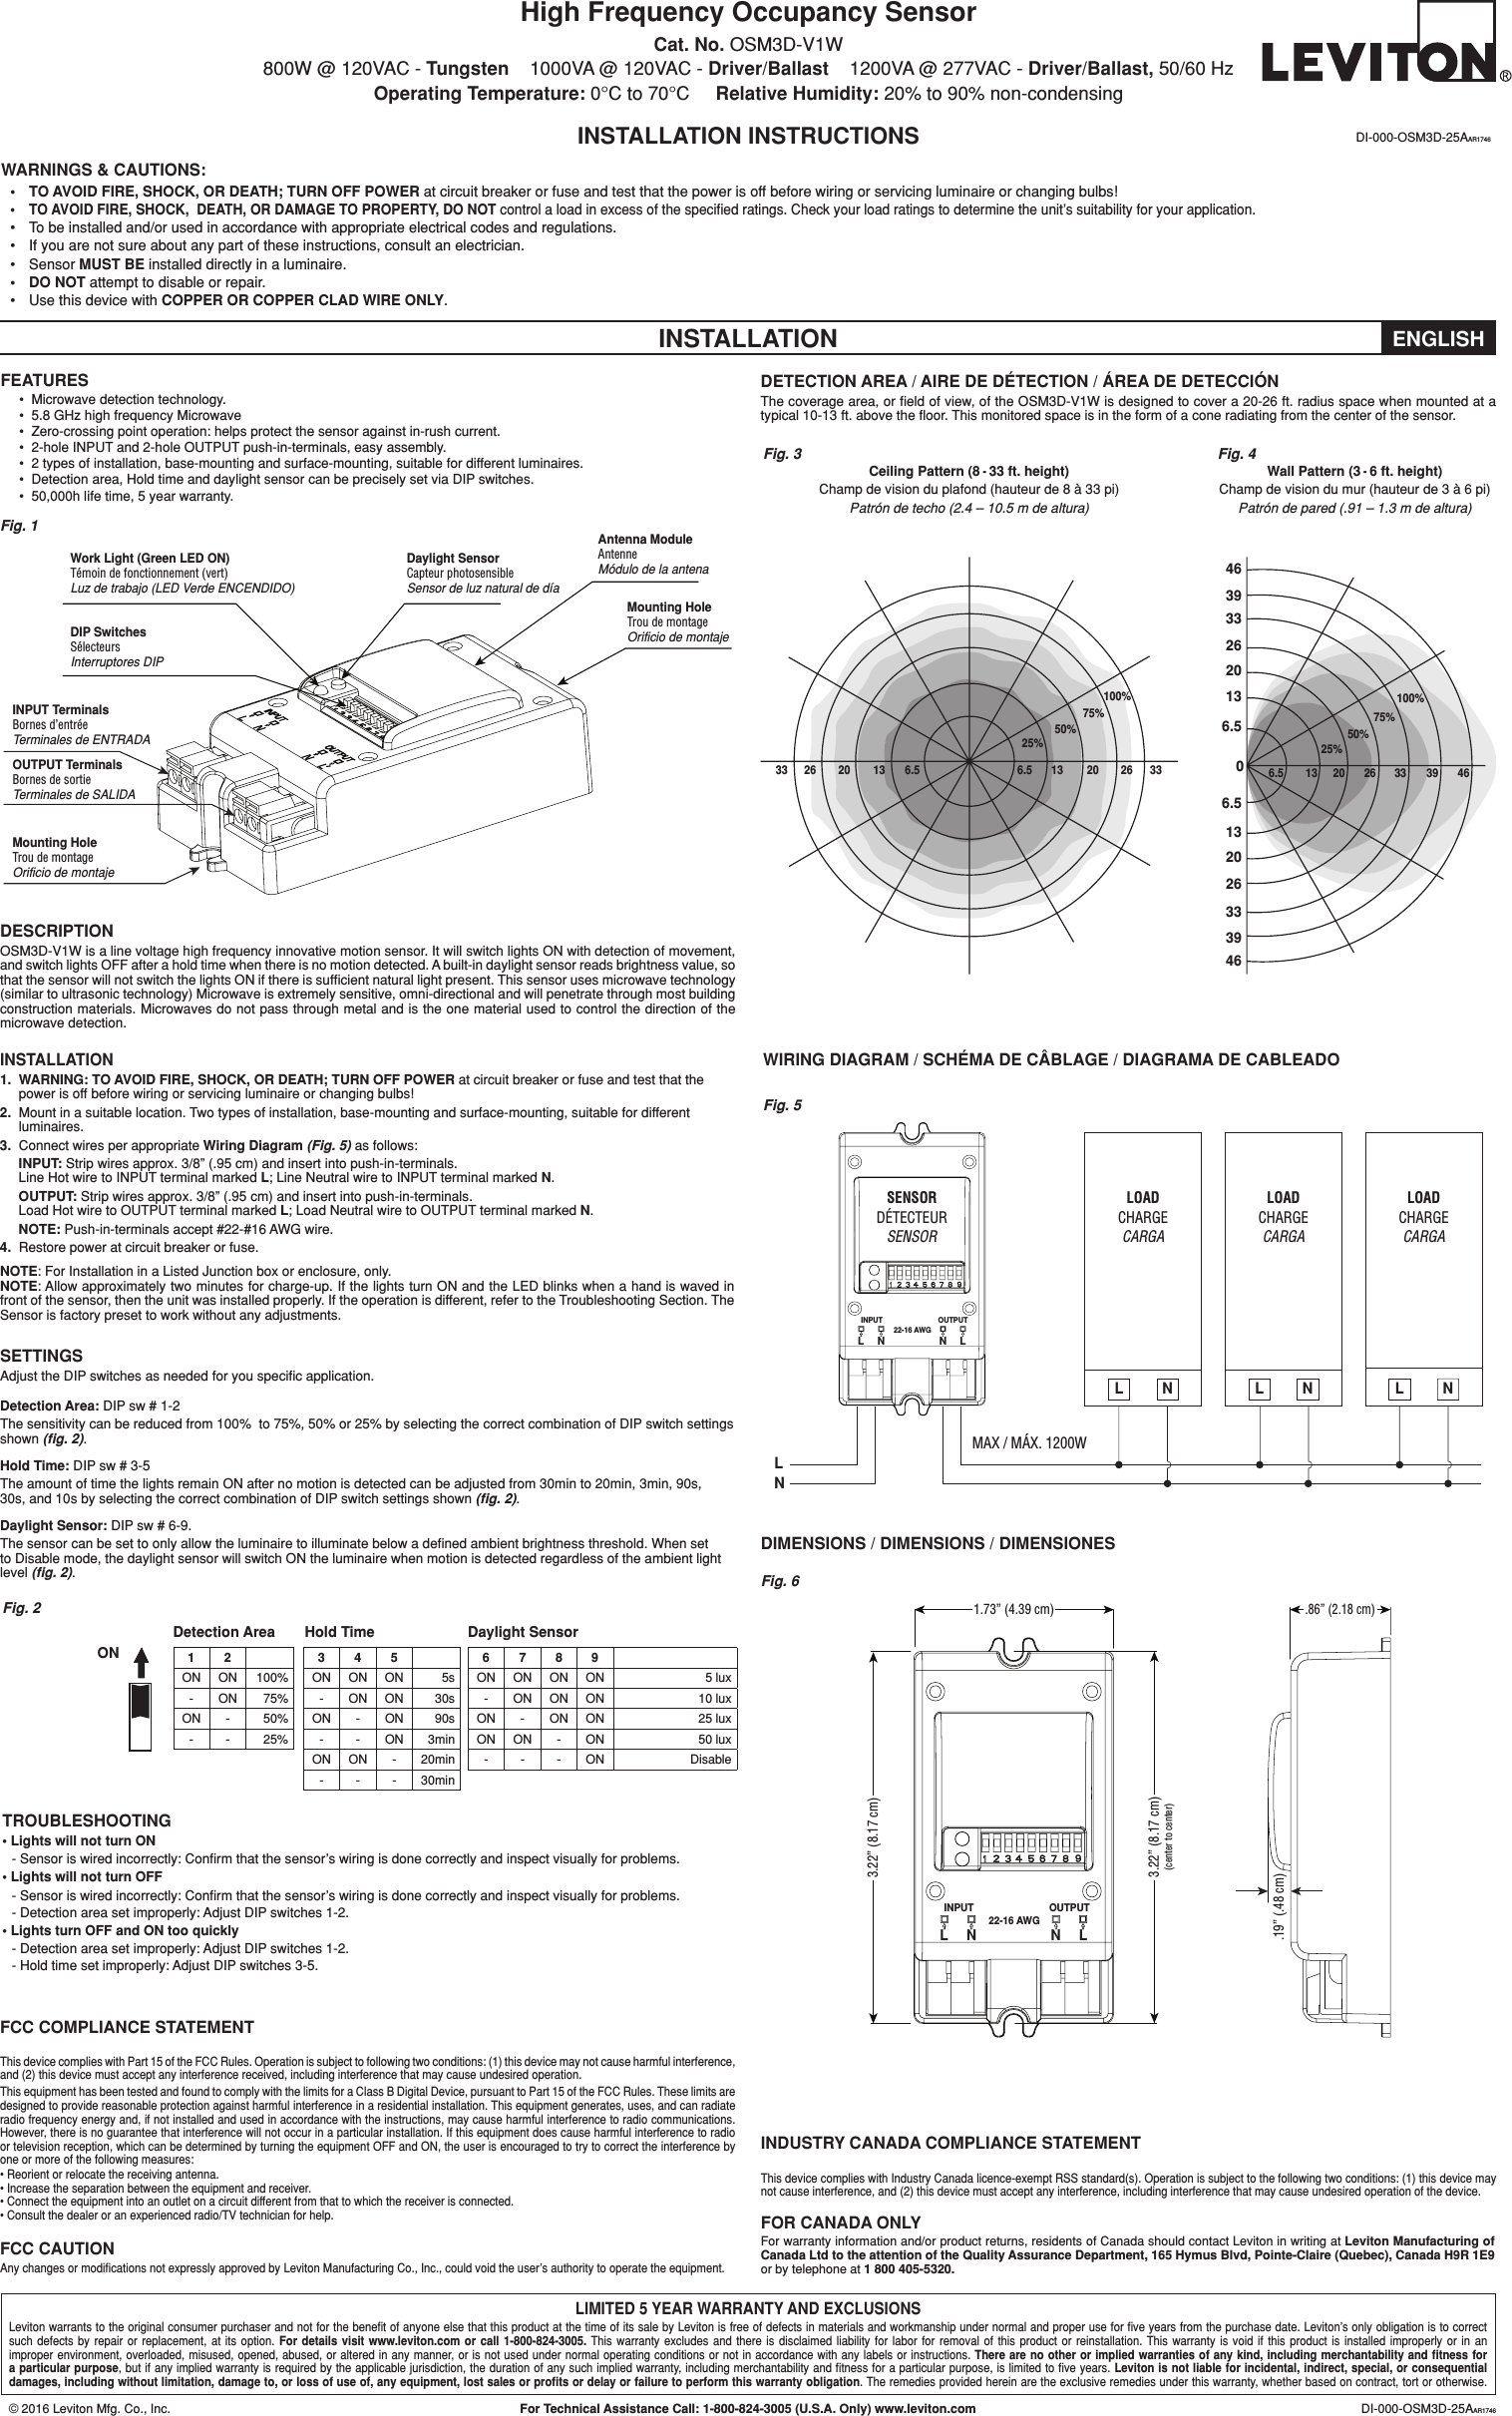 Leviton OSM3D-V1W Lighting control switch User Manual